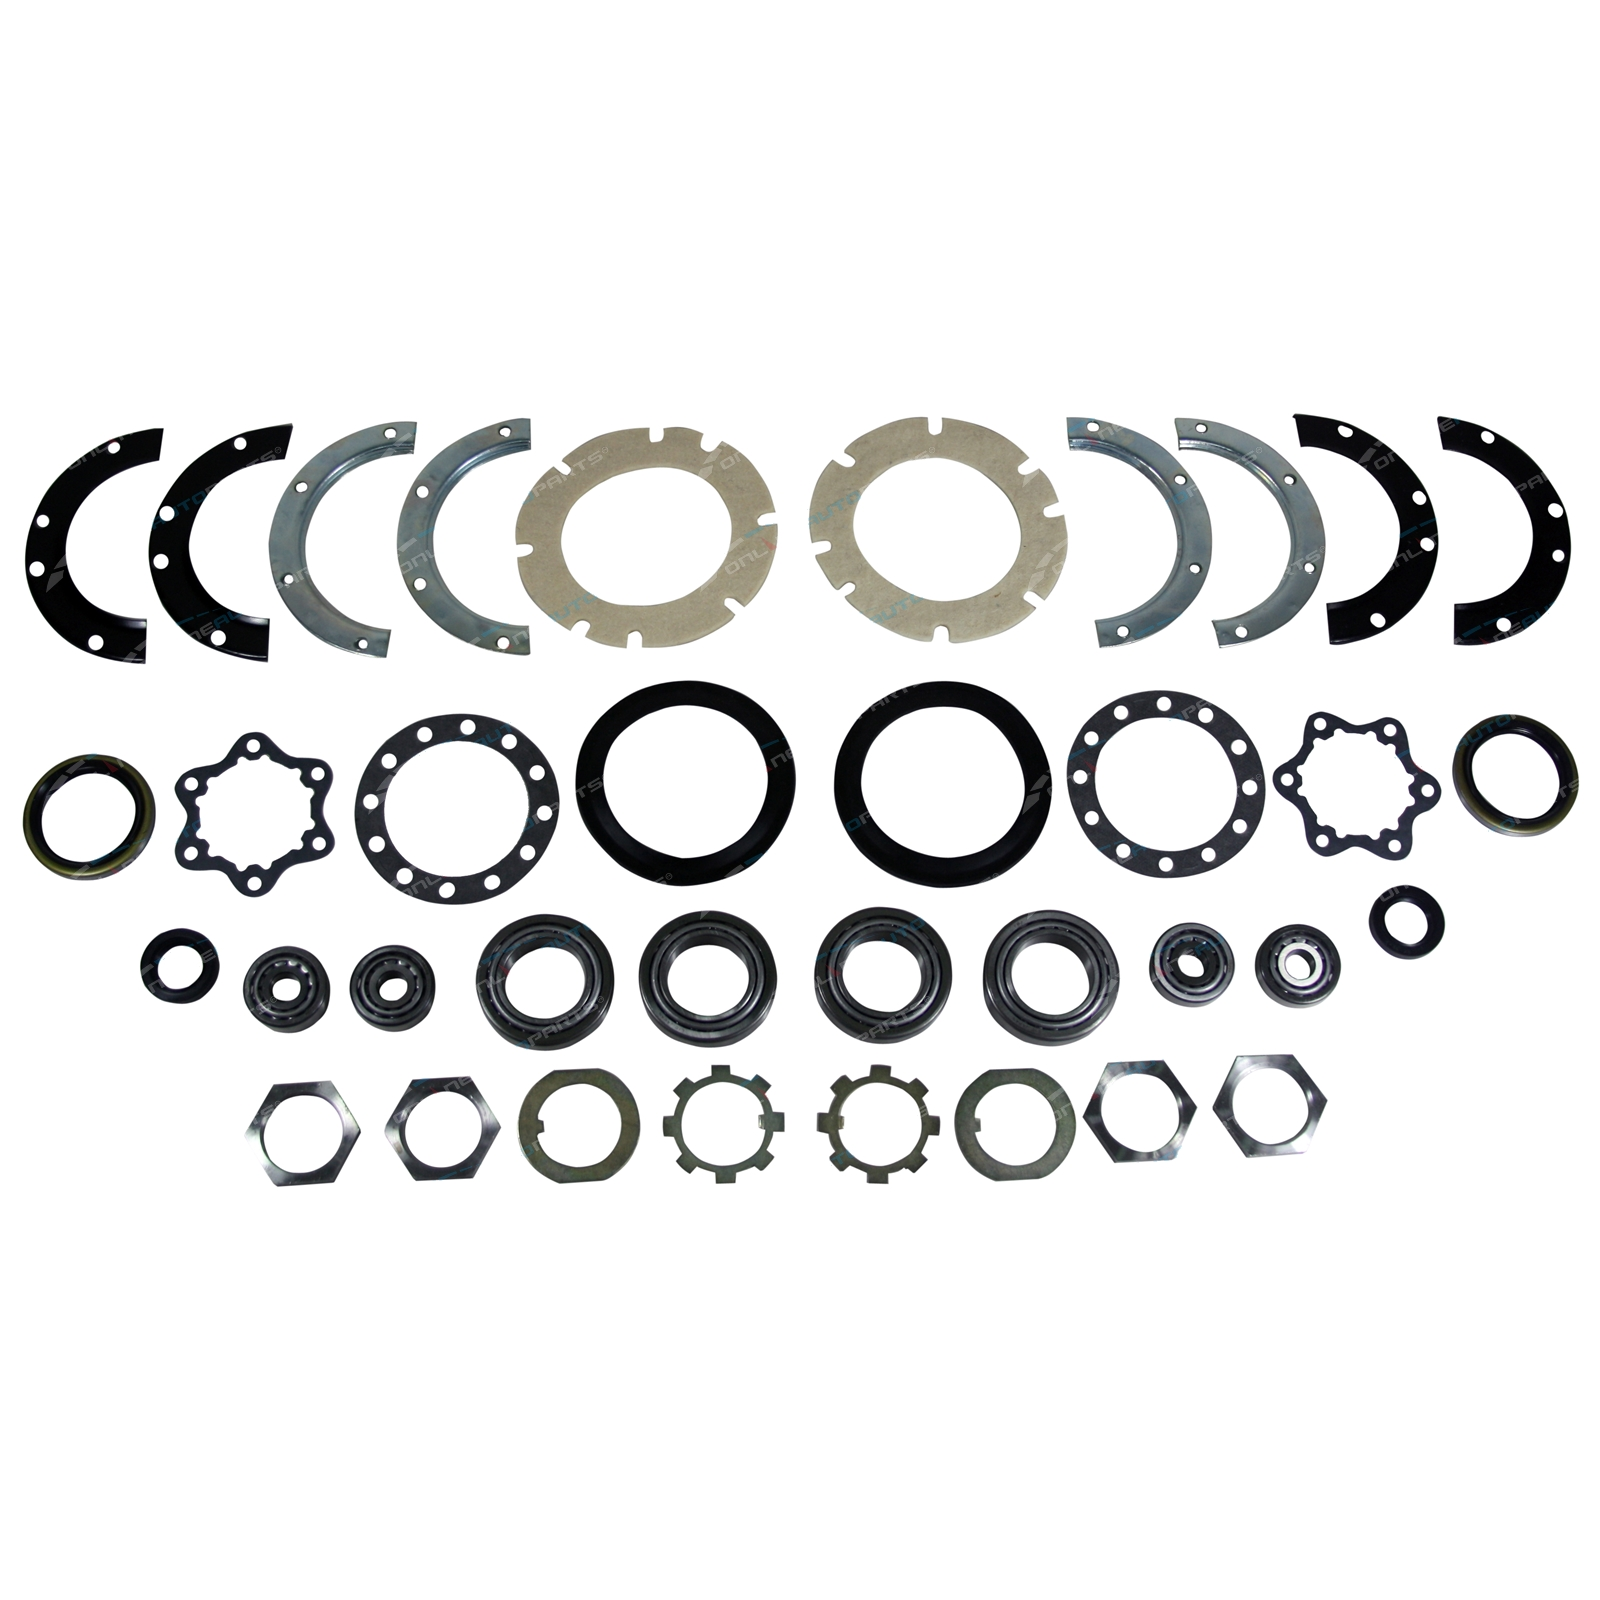 Swivel Hub Wheel Bearing Kit Suzuki Sierra Maruti Samurai King Pin Gearbox Rebuild Click To Enlarge